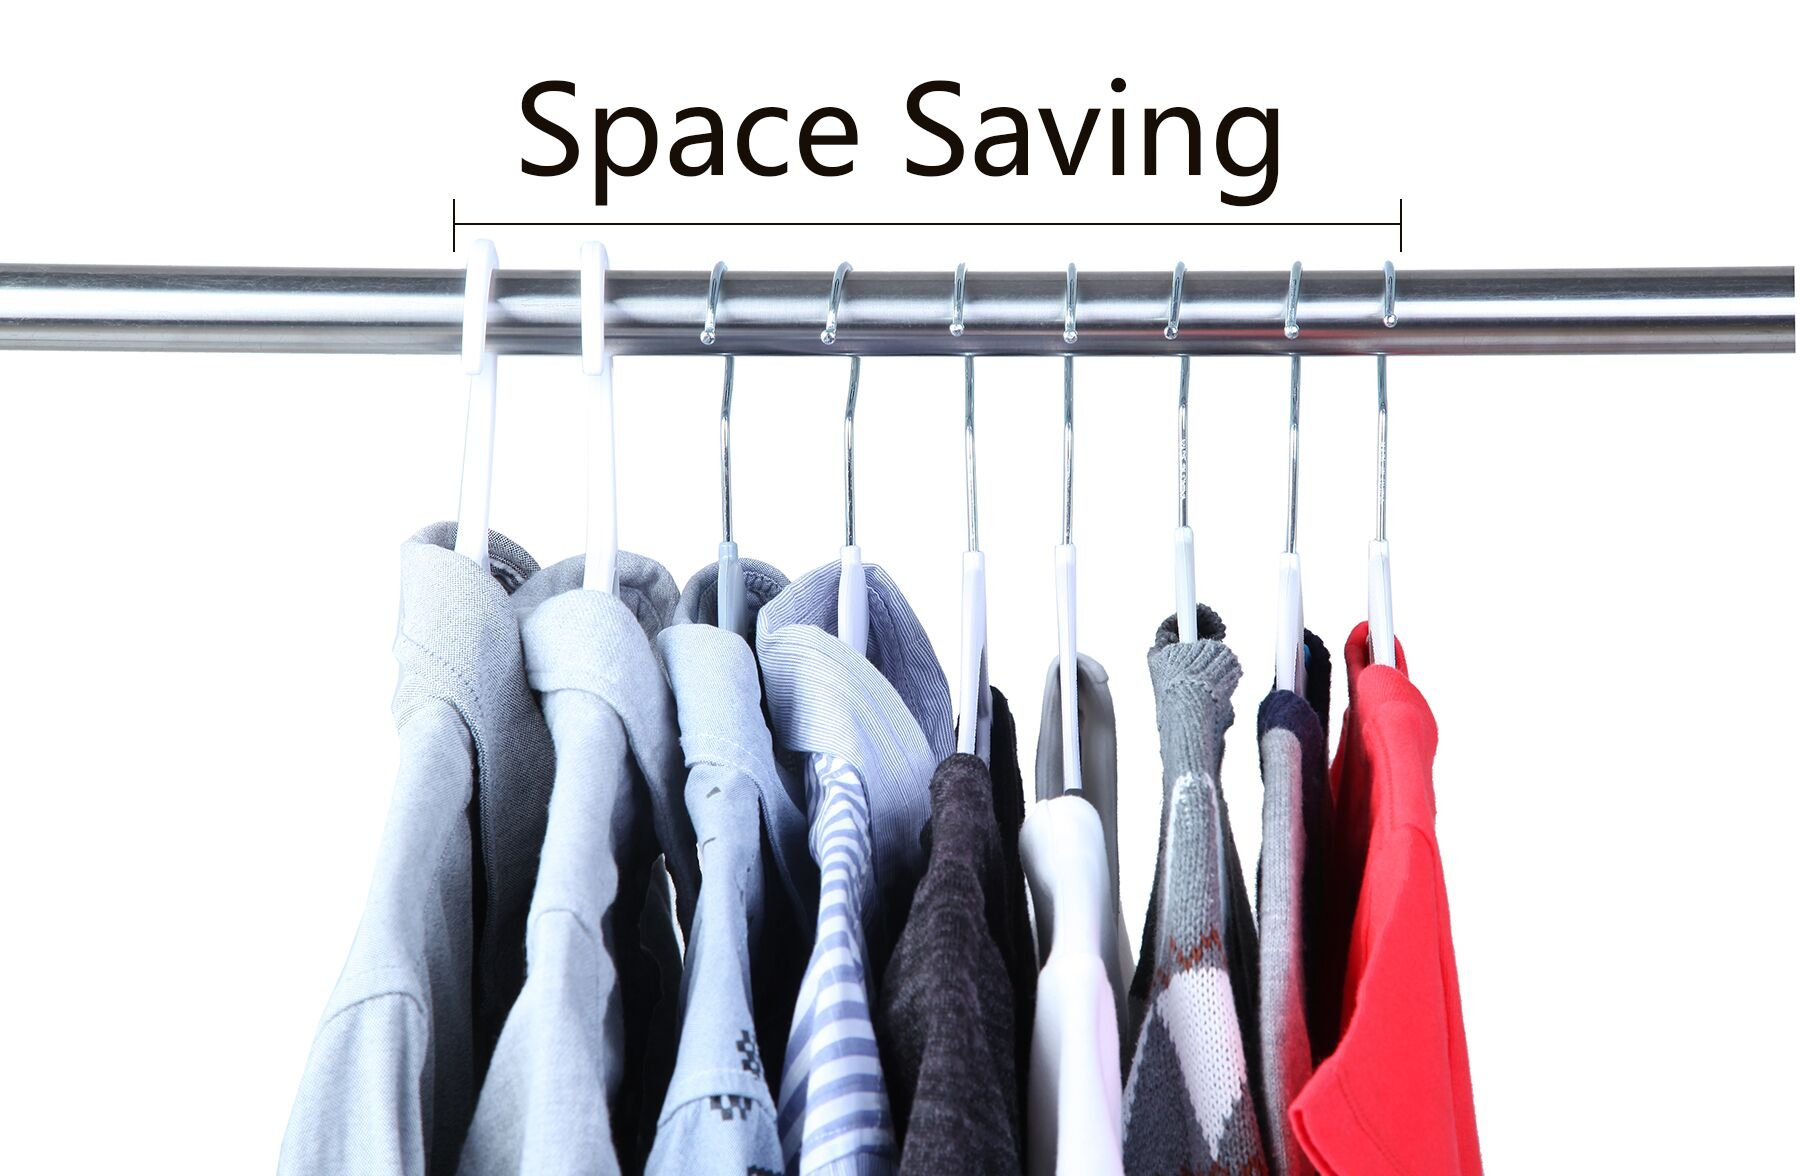 Finnhomy Super Value 50 Pack Plastic Hangers, Durable Clothes Hangers with Non-Slip Pads, Space Saving Easy Slide Organizer for Bedroom Closet Wardrobe, Great for Shirts, Pants, Scarves by Finnhomy (Image #6)